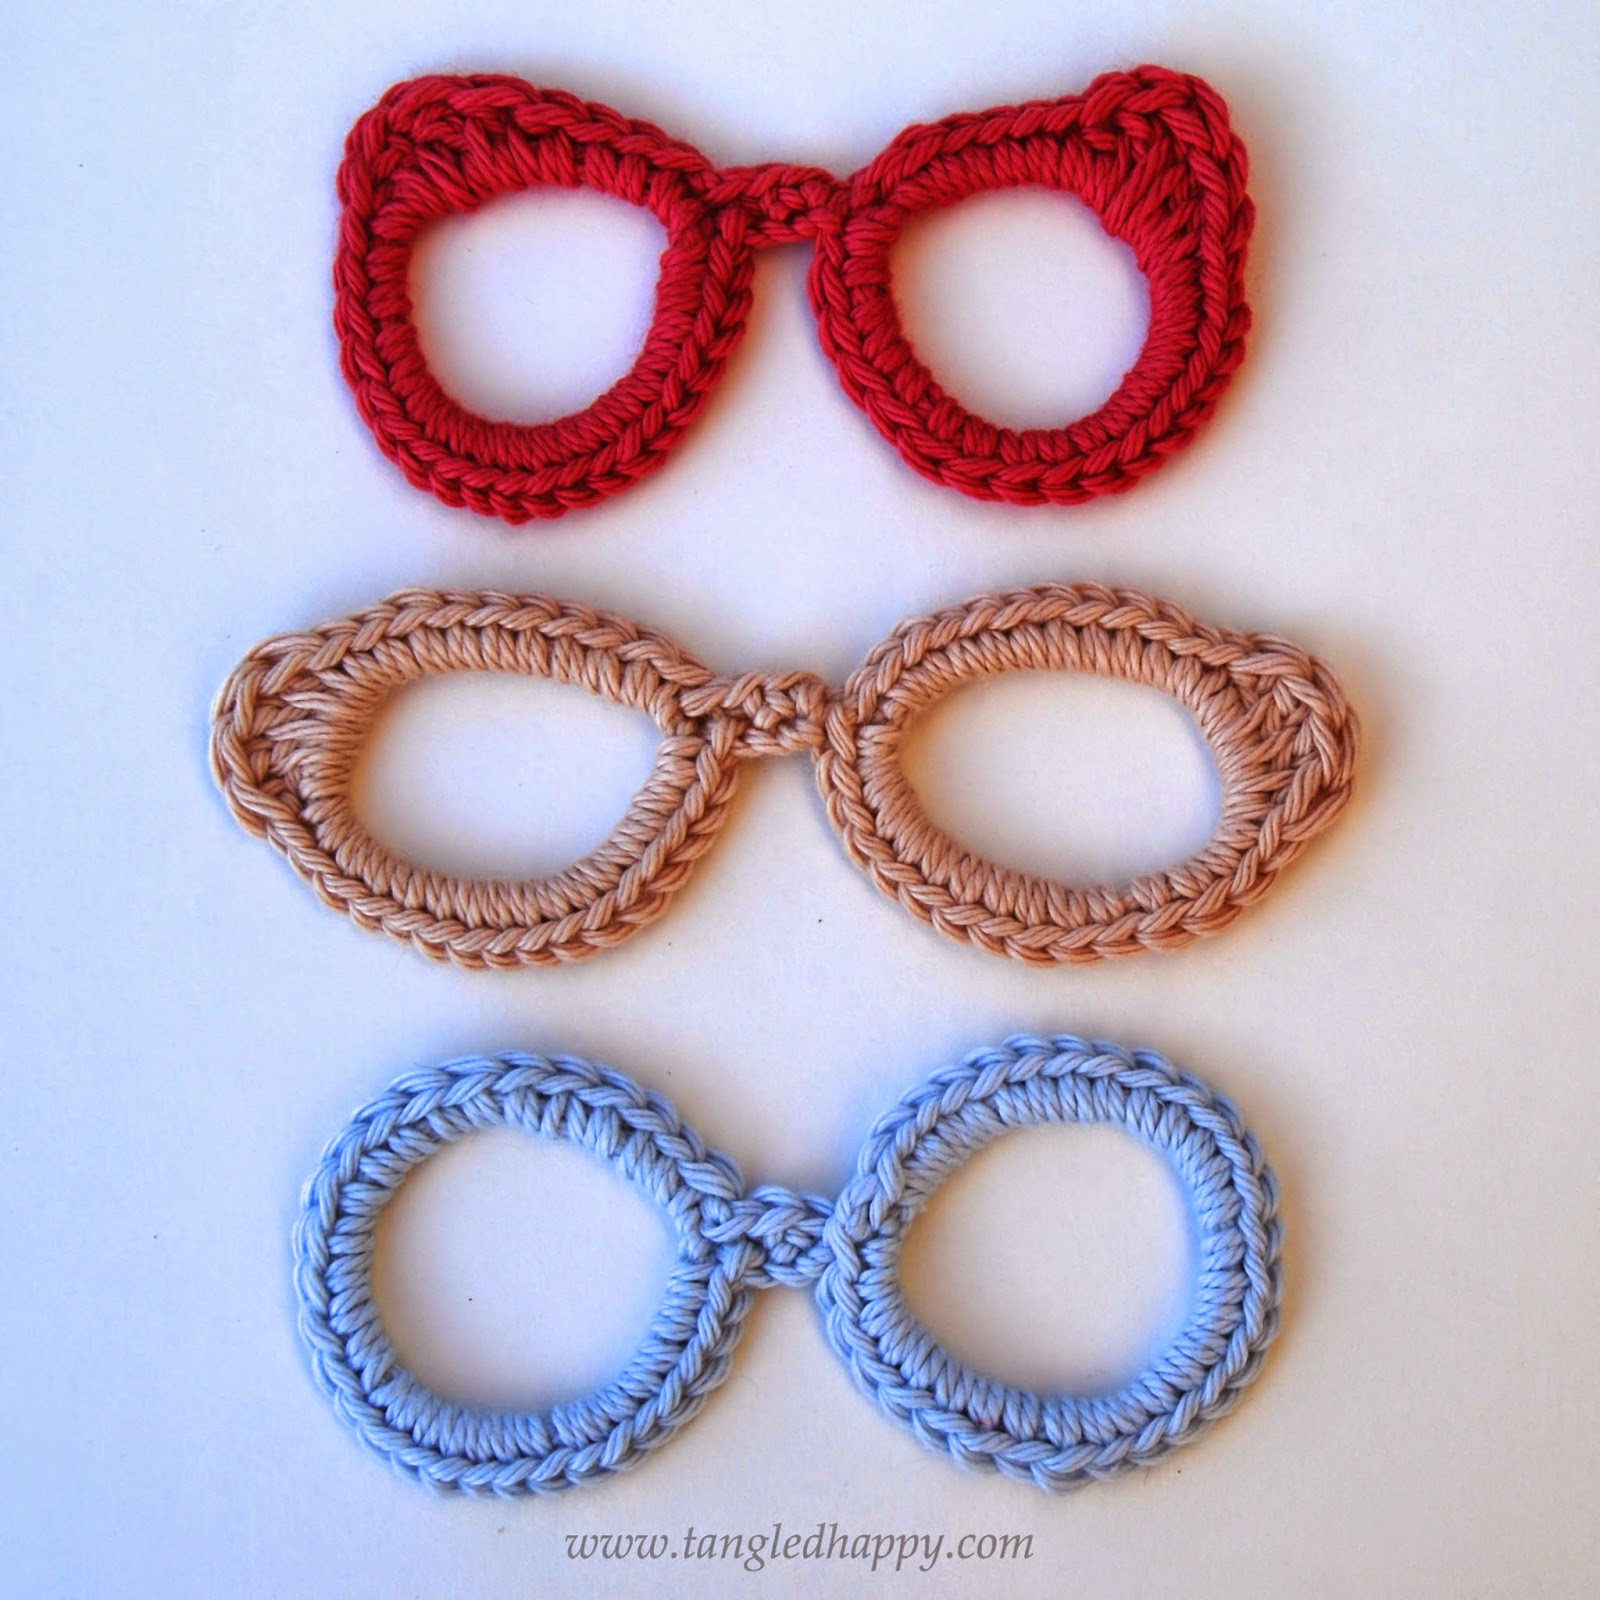 Applique Tangled Happy Eyeglasses Applique Free Crochet Pattern